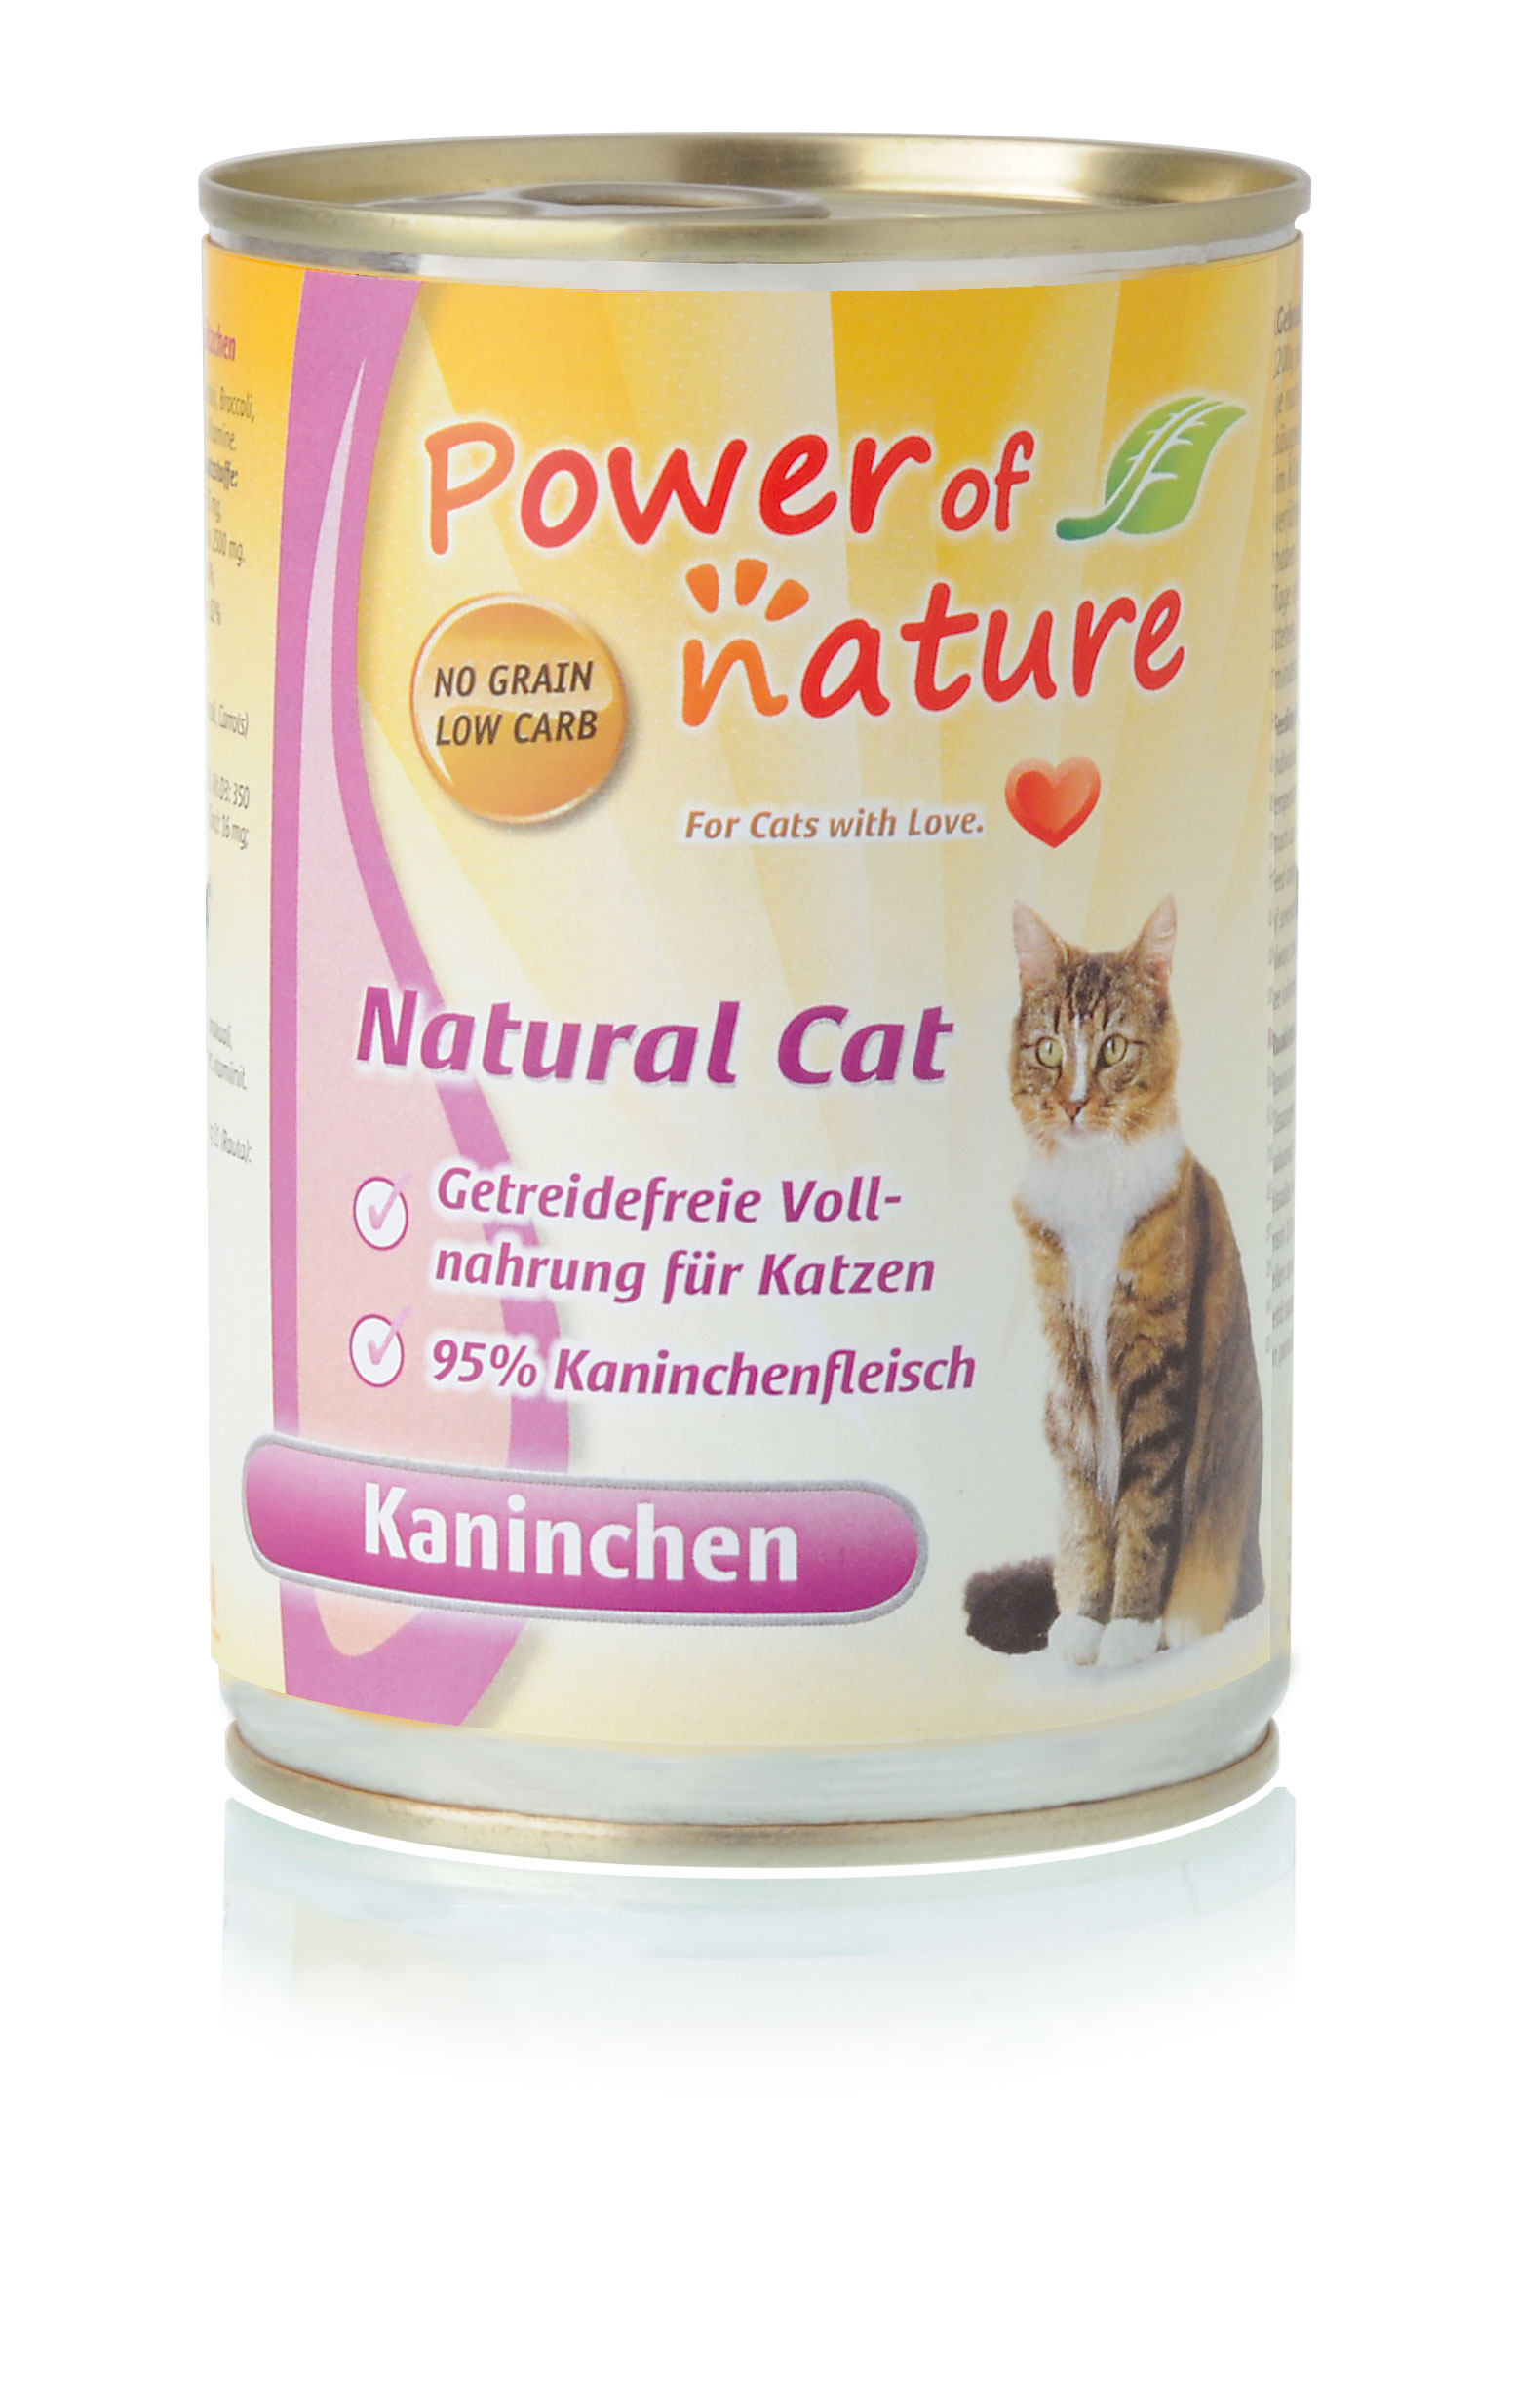 Power of Nature Natural Cat Dose Kaninchen 24 x 400g